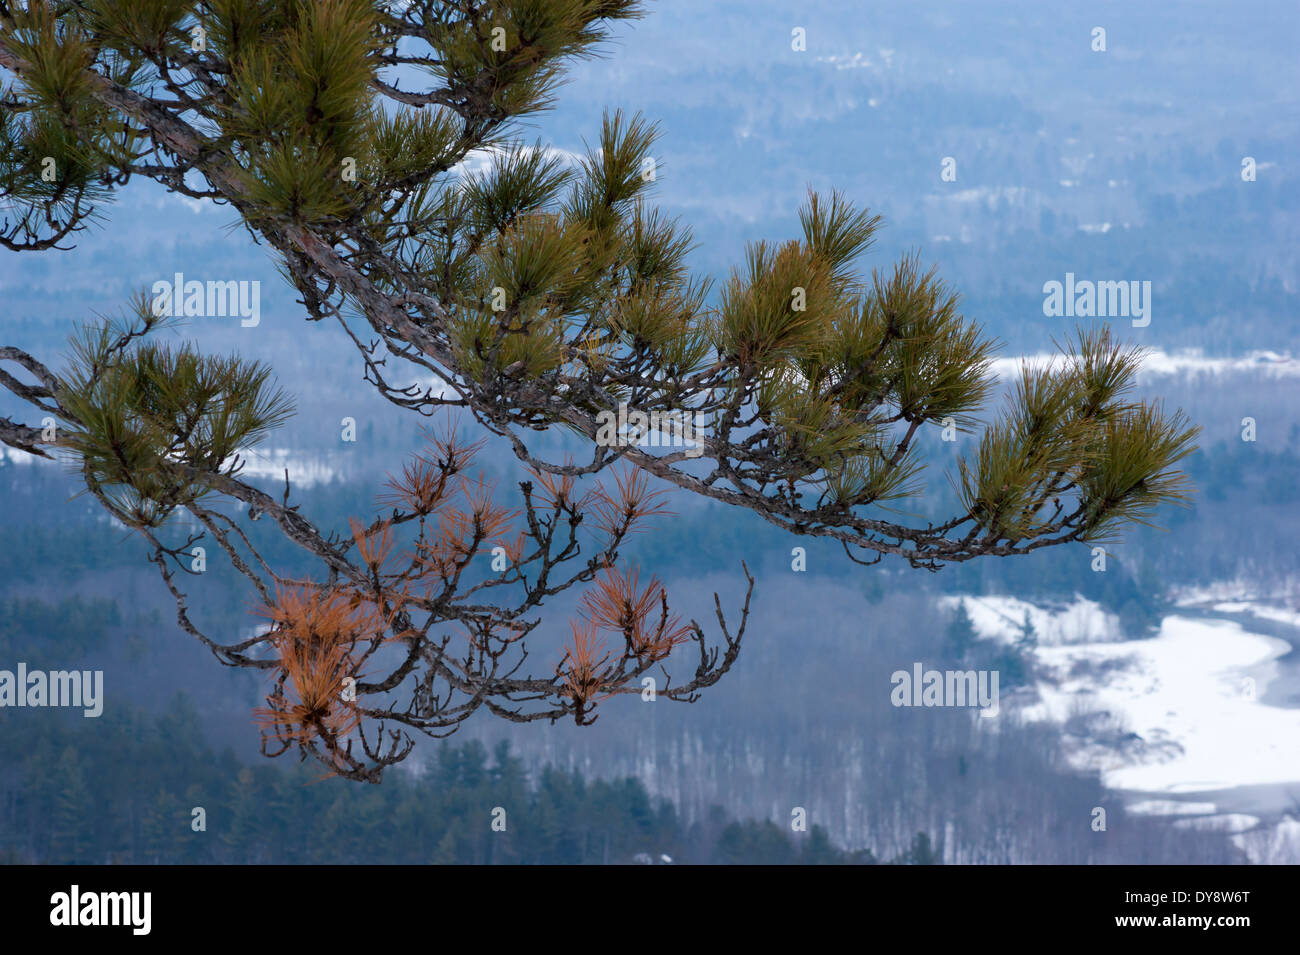 Pine tree branch against a wintry forest backdrop - Stock Image